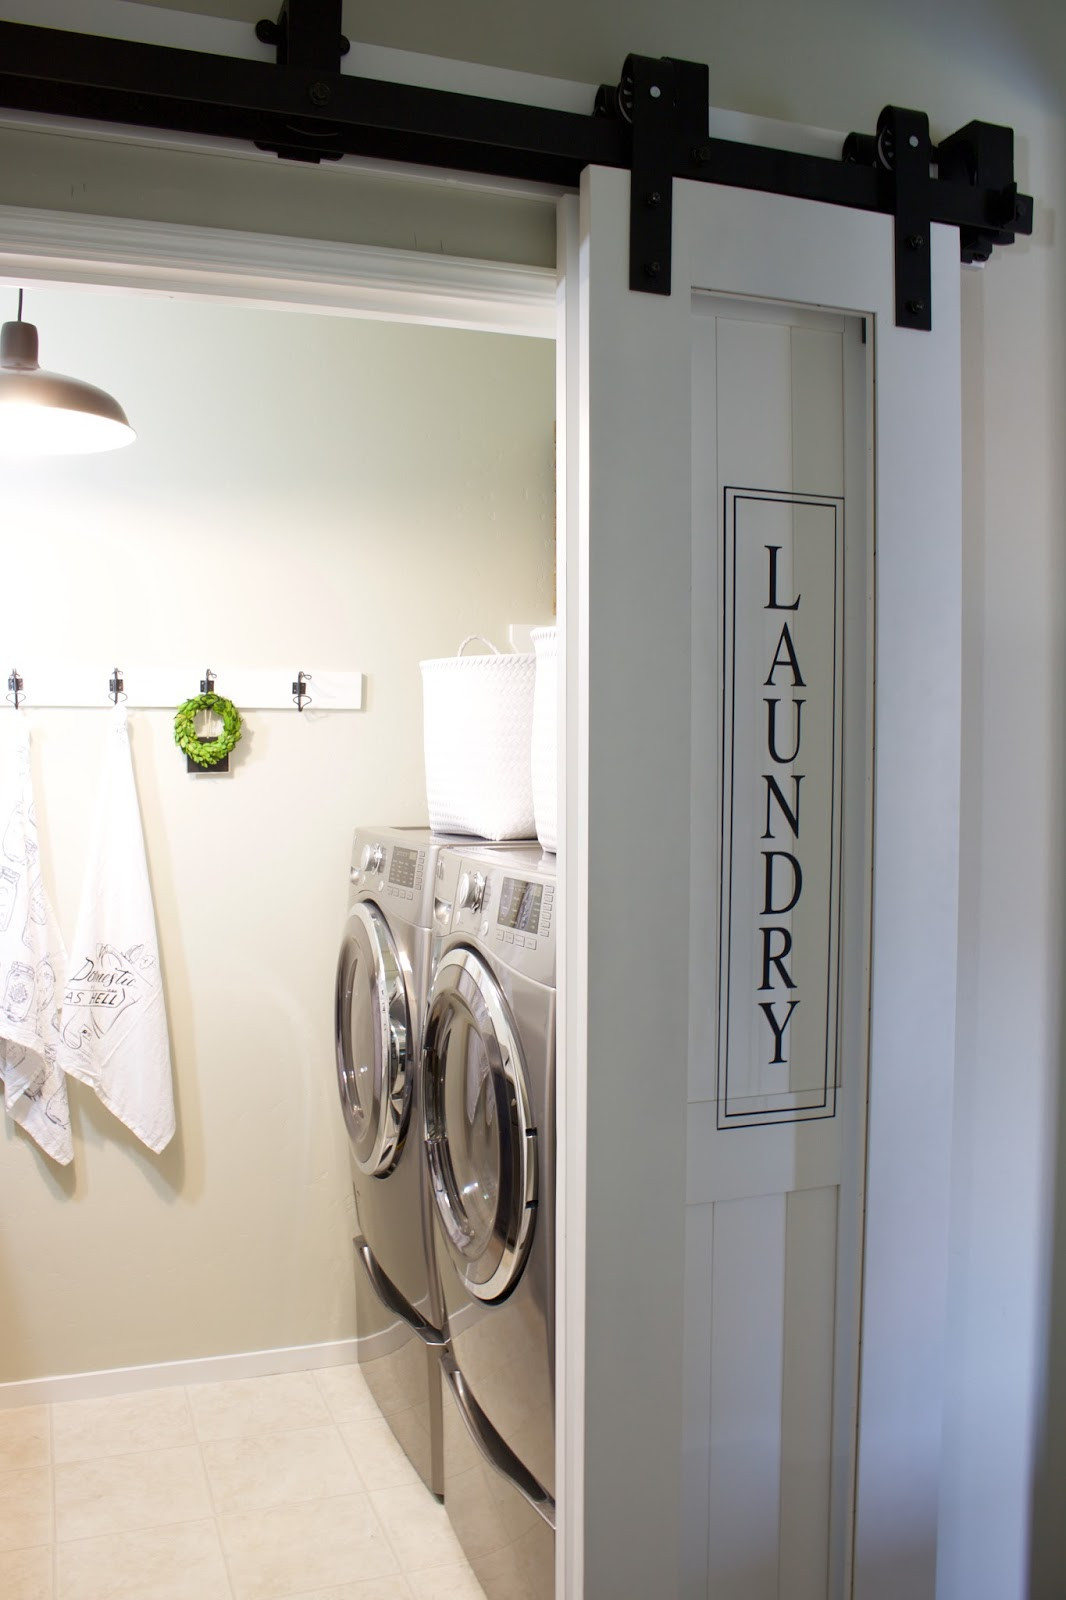 Best ideas about Laundry Room Doors . Save or Pin Laundry Room & Barn Door A House and A Dog Now.